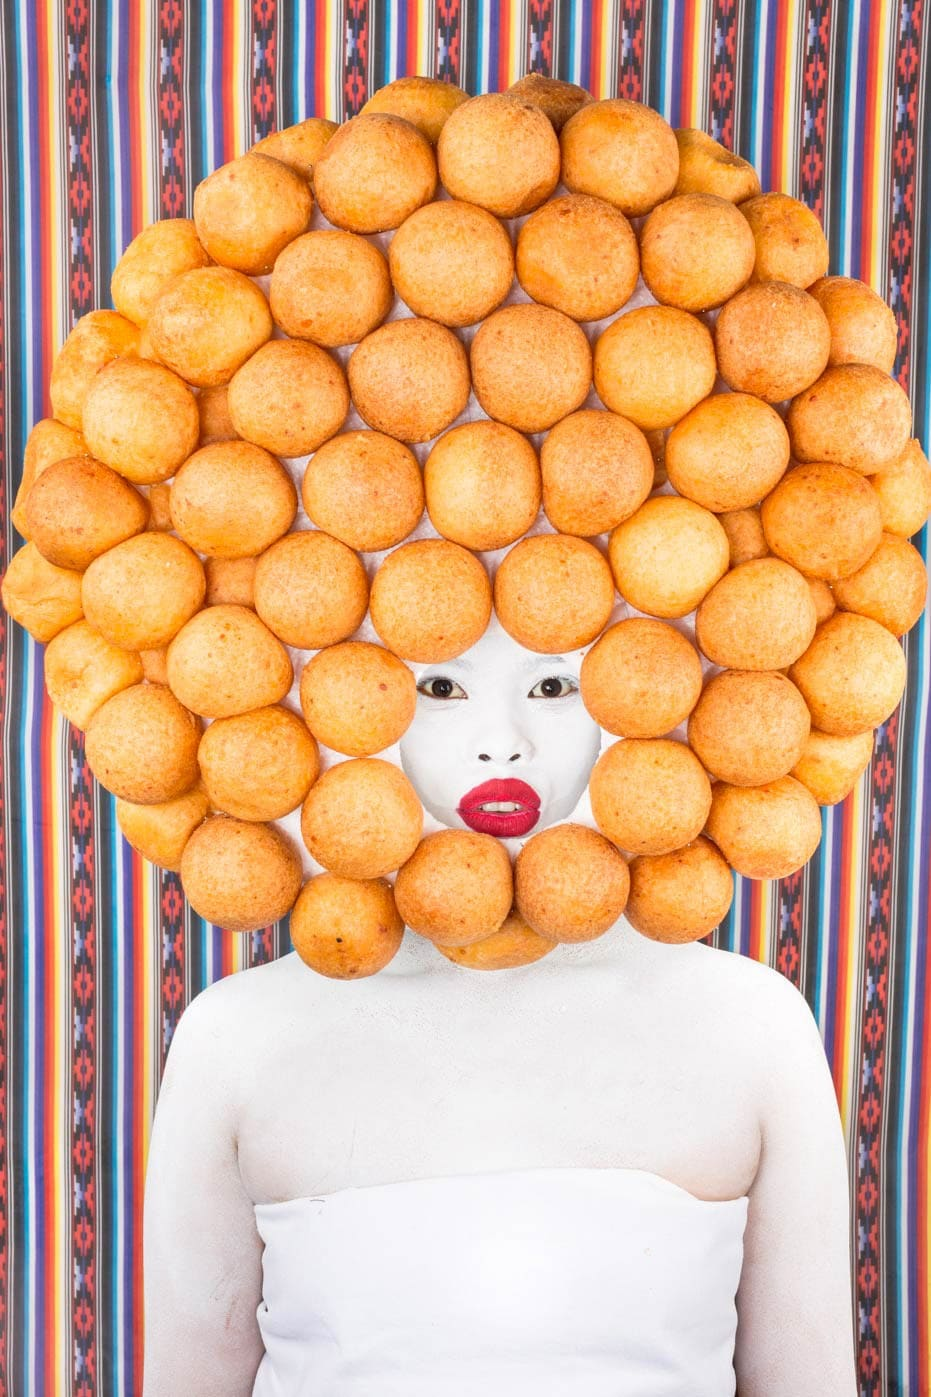 Buñuelos Colombianos | Cooking faces by Enora Lalet